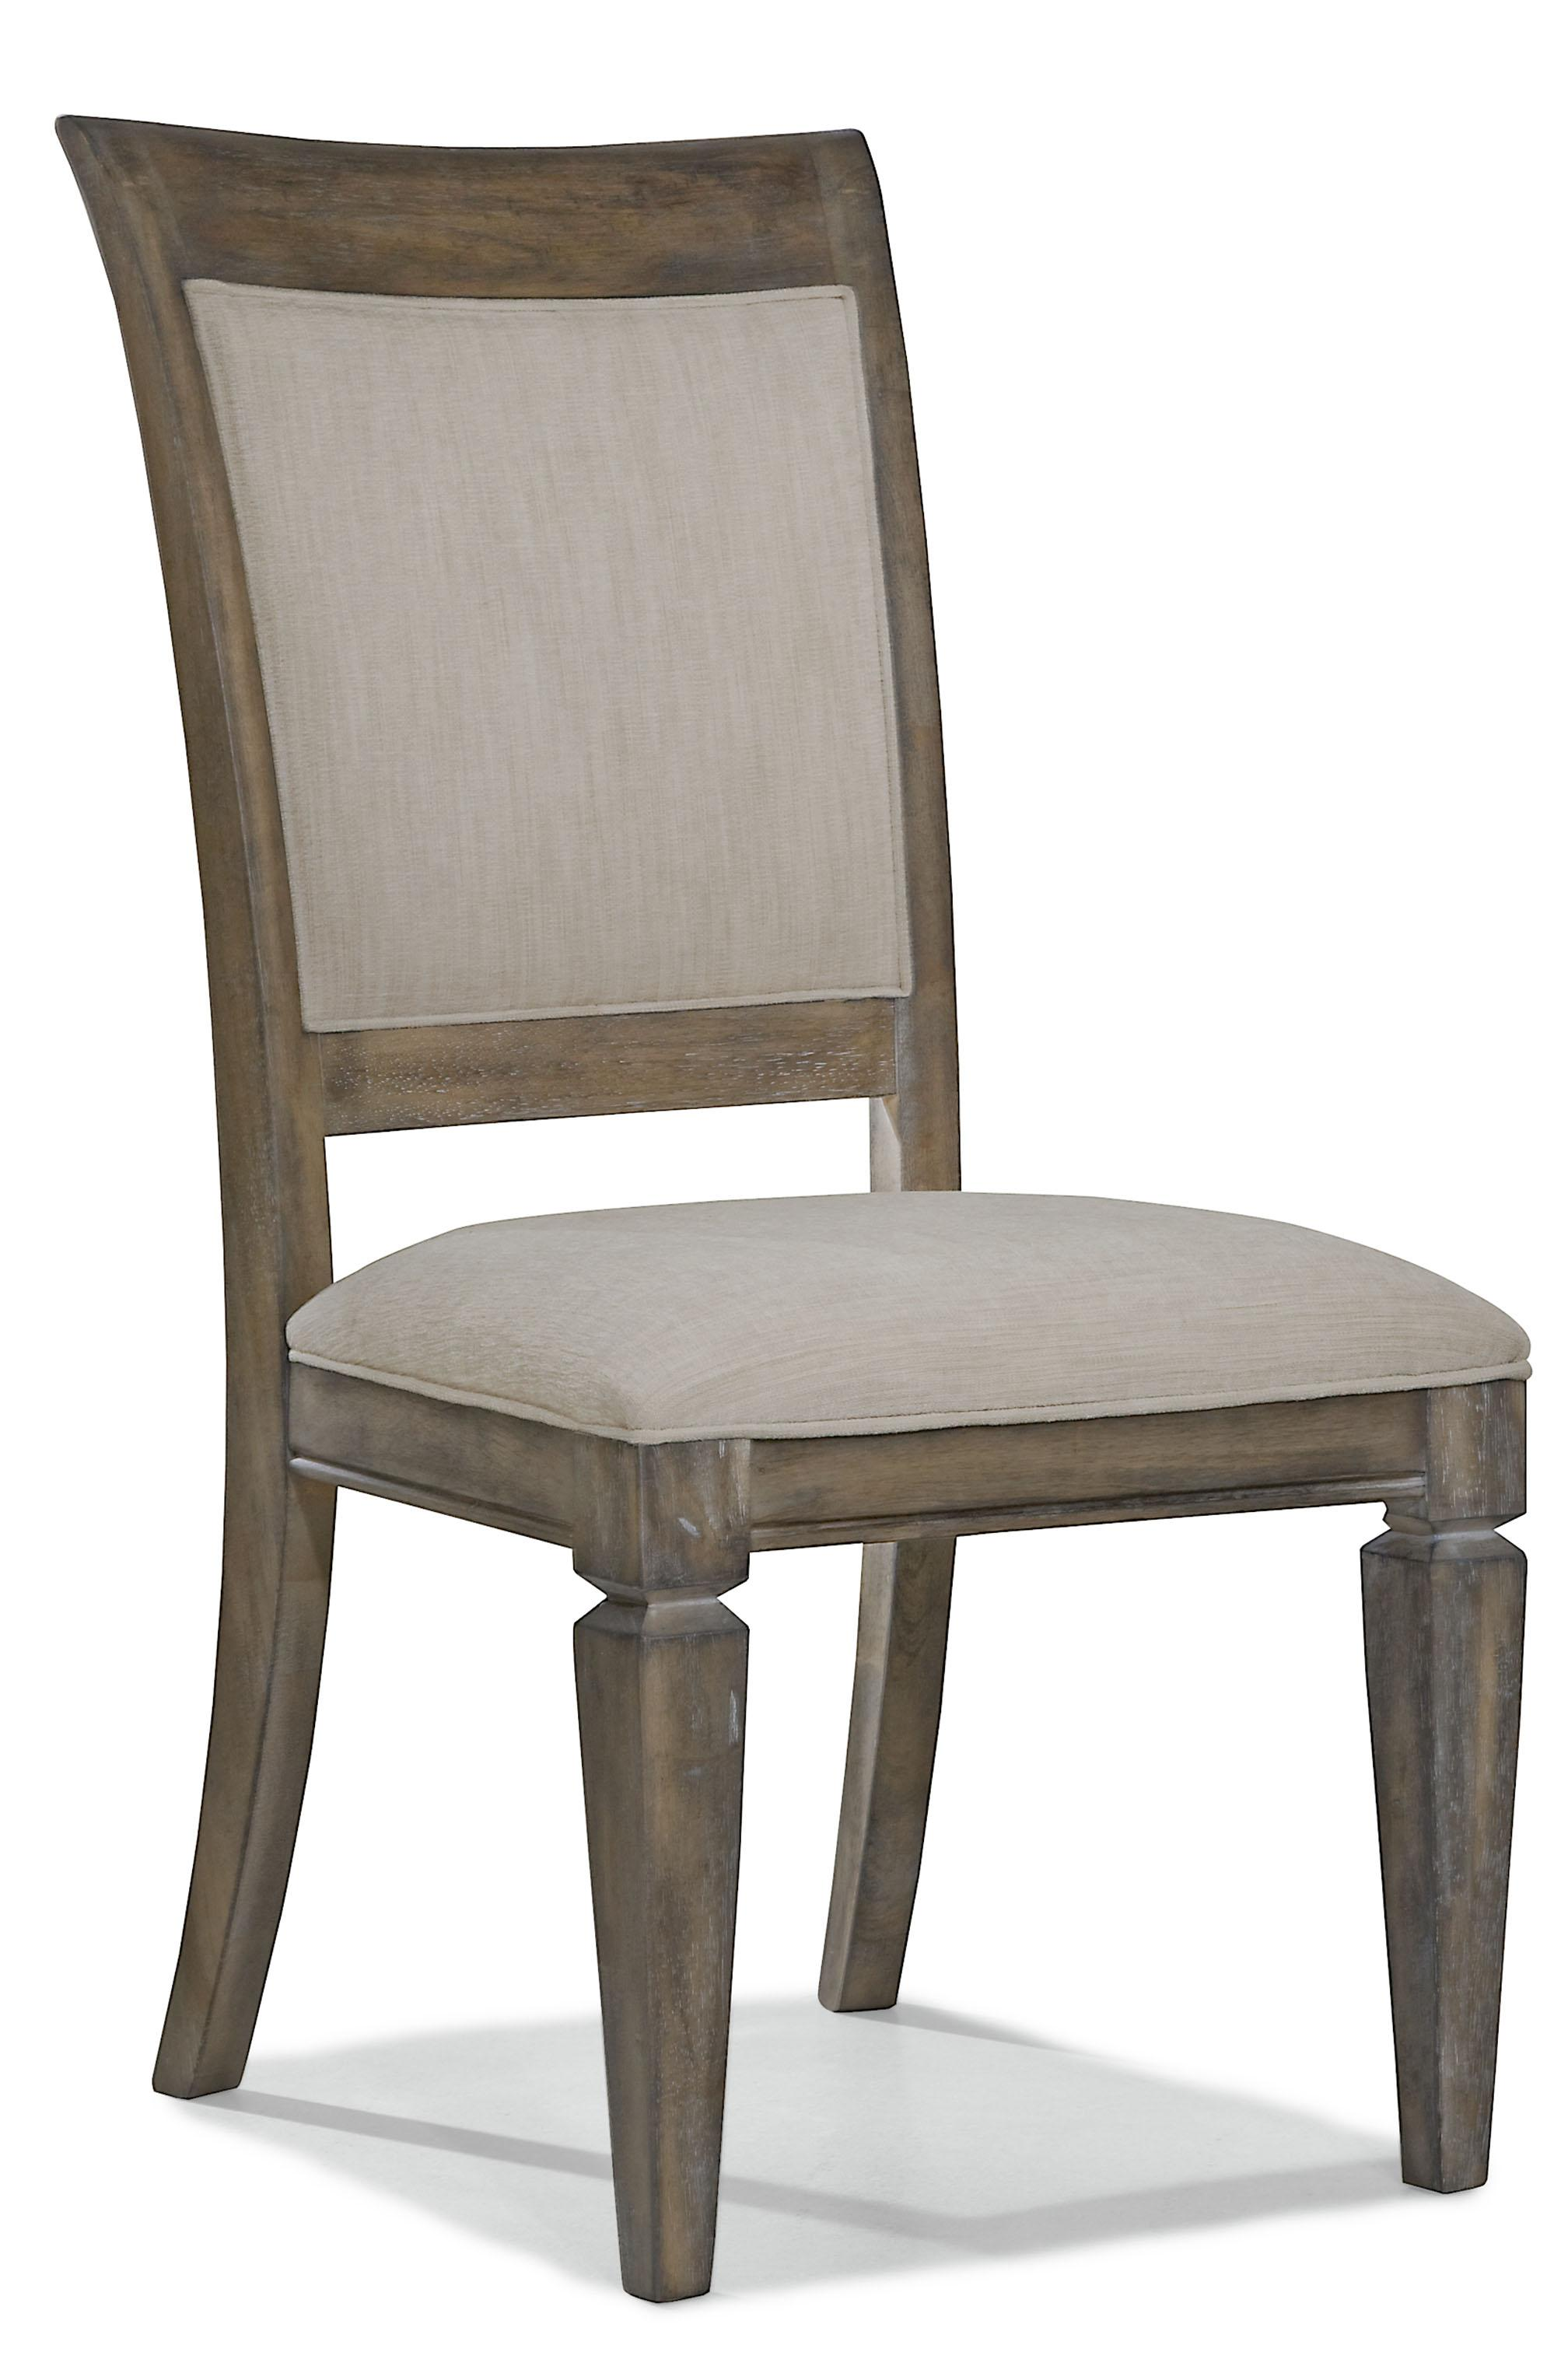 Legacy Classic Brownstone Village Upholstered Back Side Chair - Item Number: 2760-140 KD